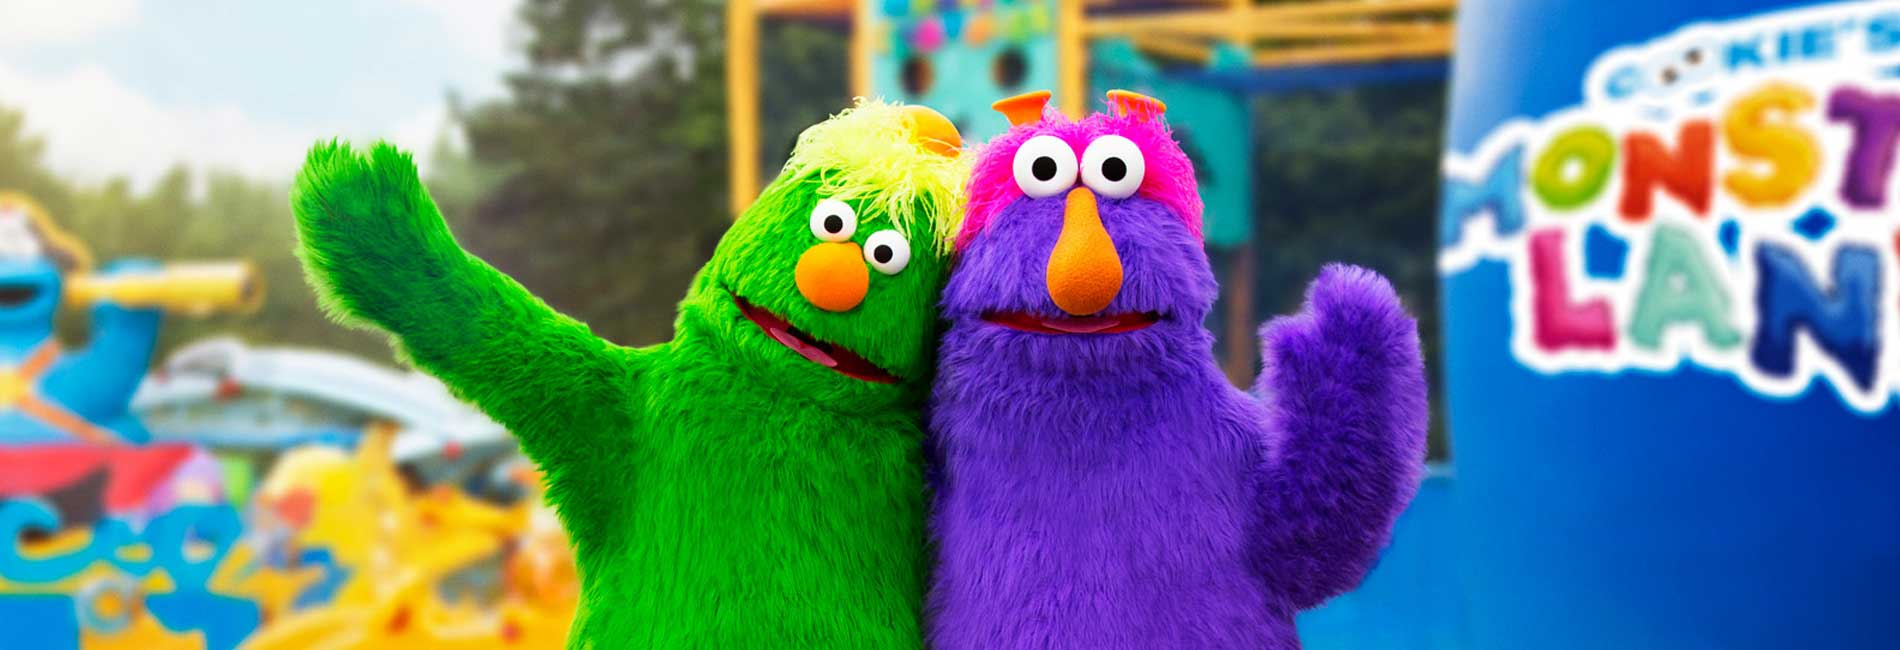 Honker and Dinger outside waving at Sesame Place theme park